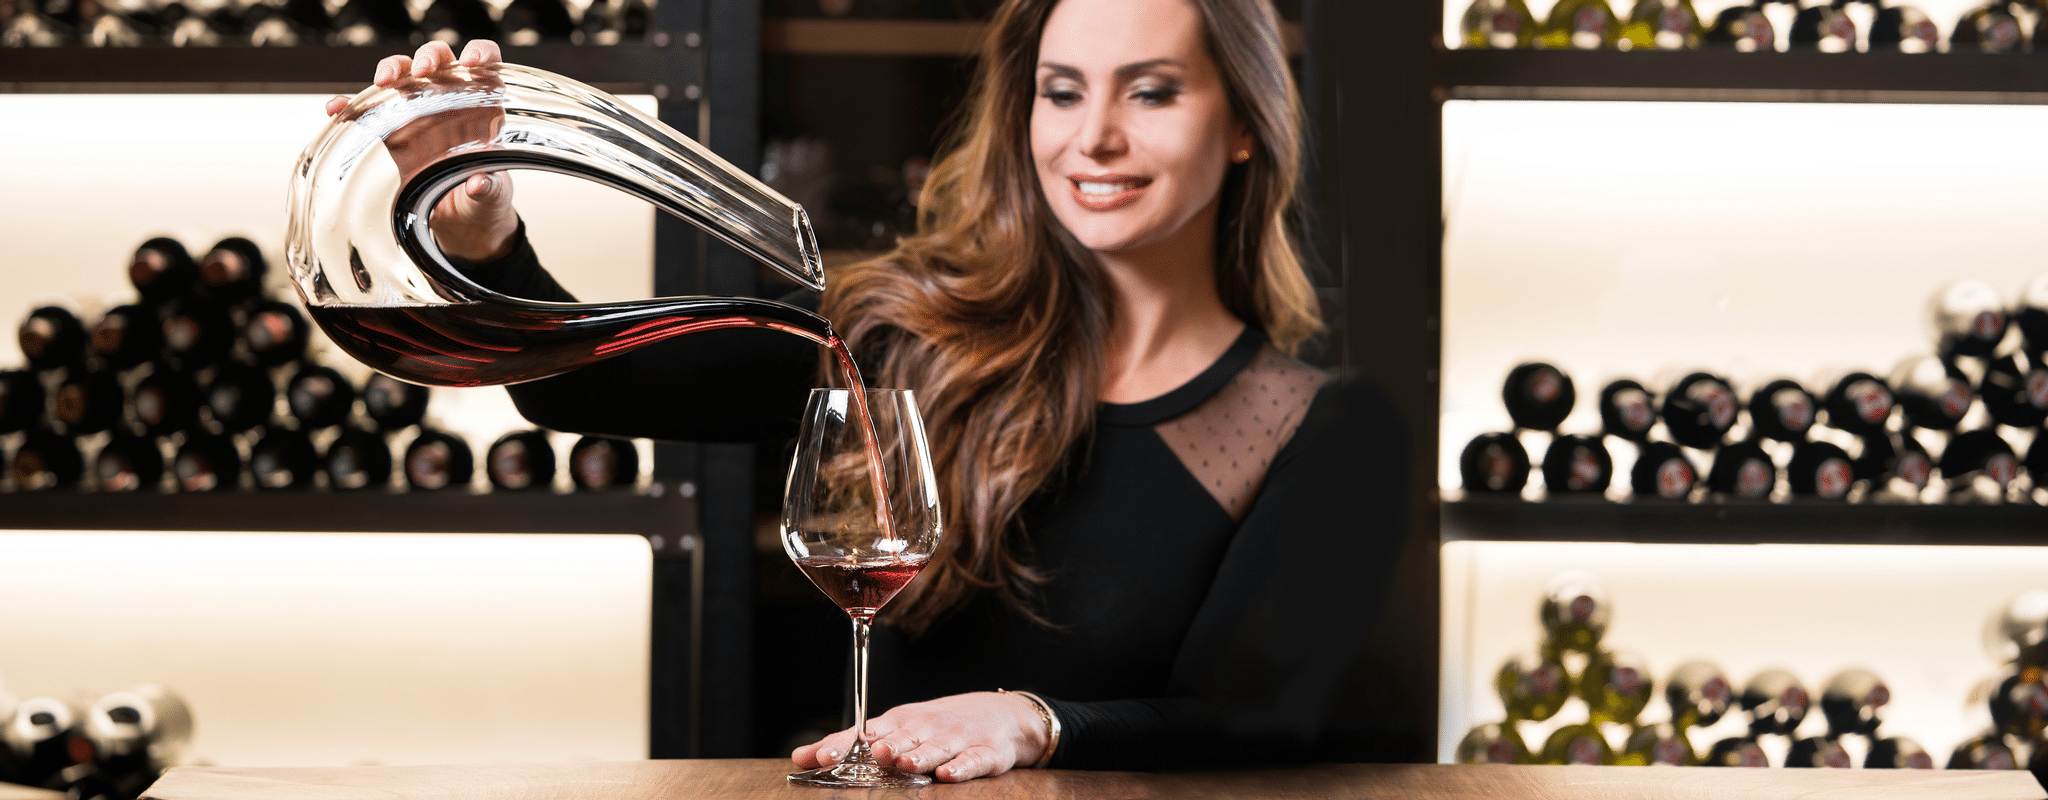 RIEDEL decanters and an Extreme Cabernet glass